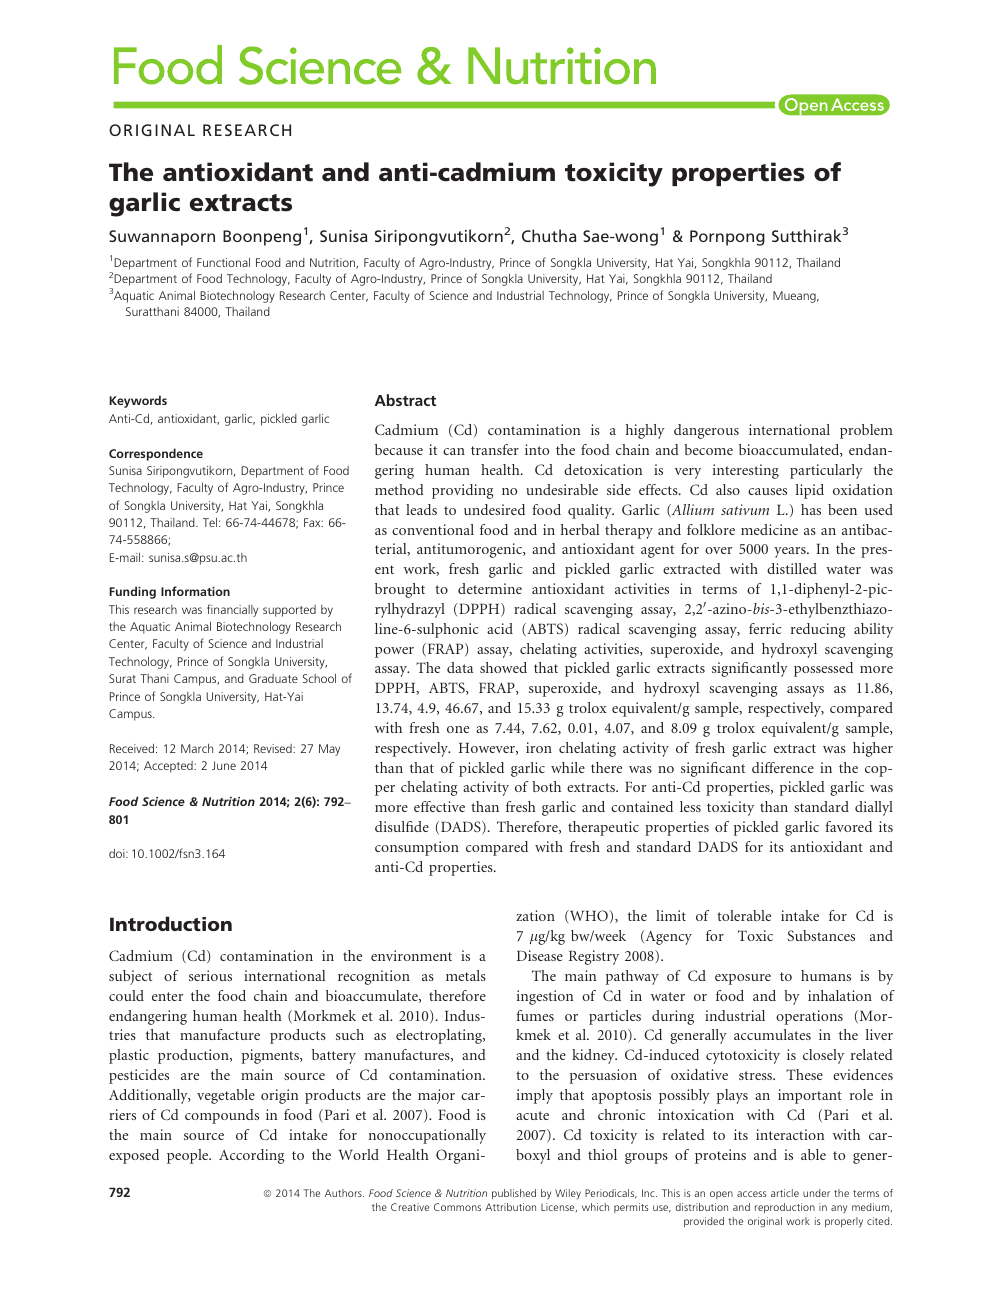 The antioxidant and anti-cadmium toxicity properties of